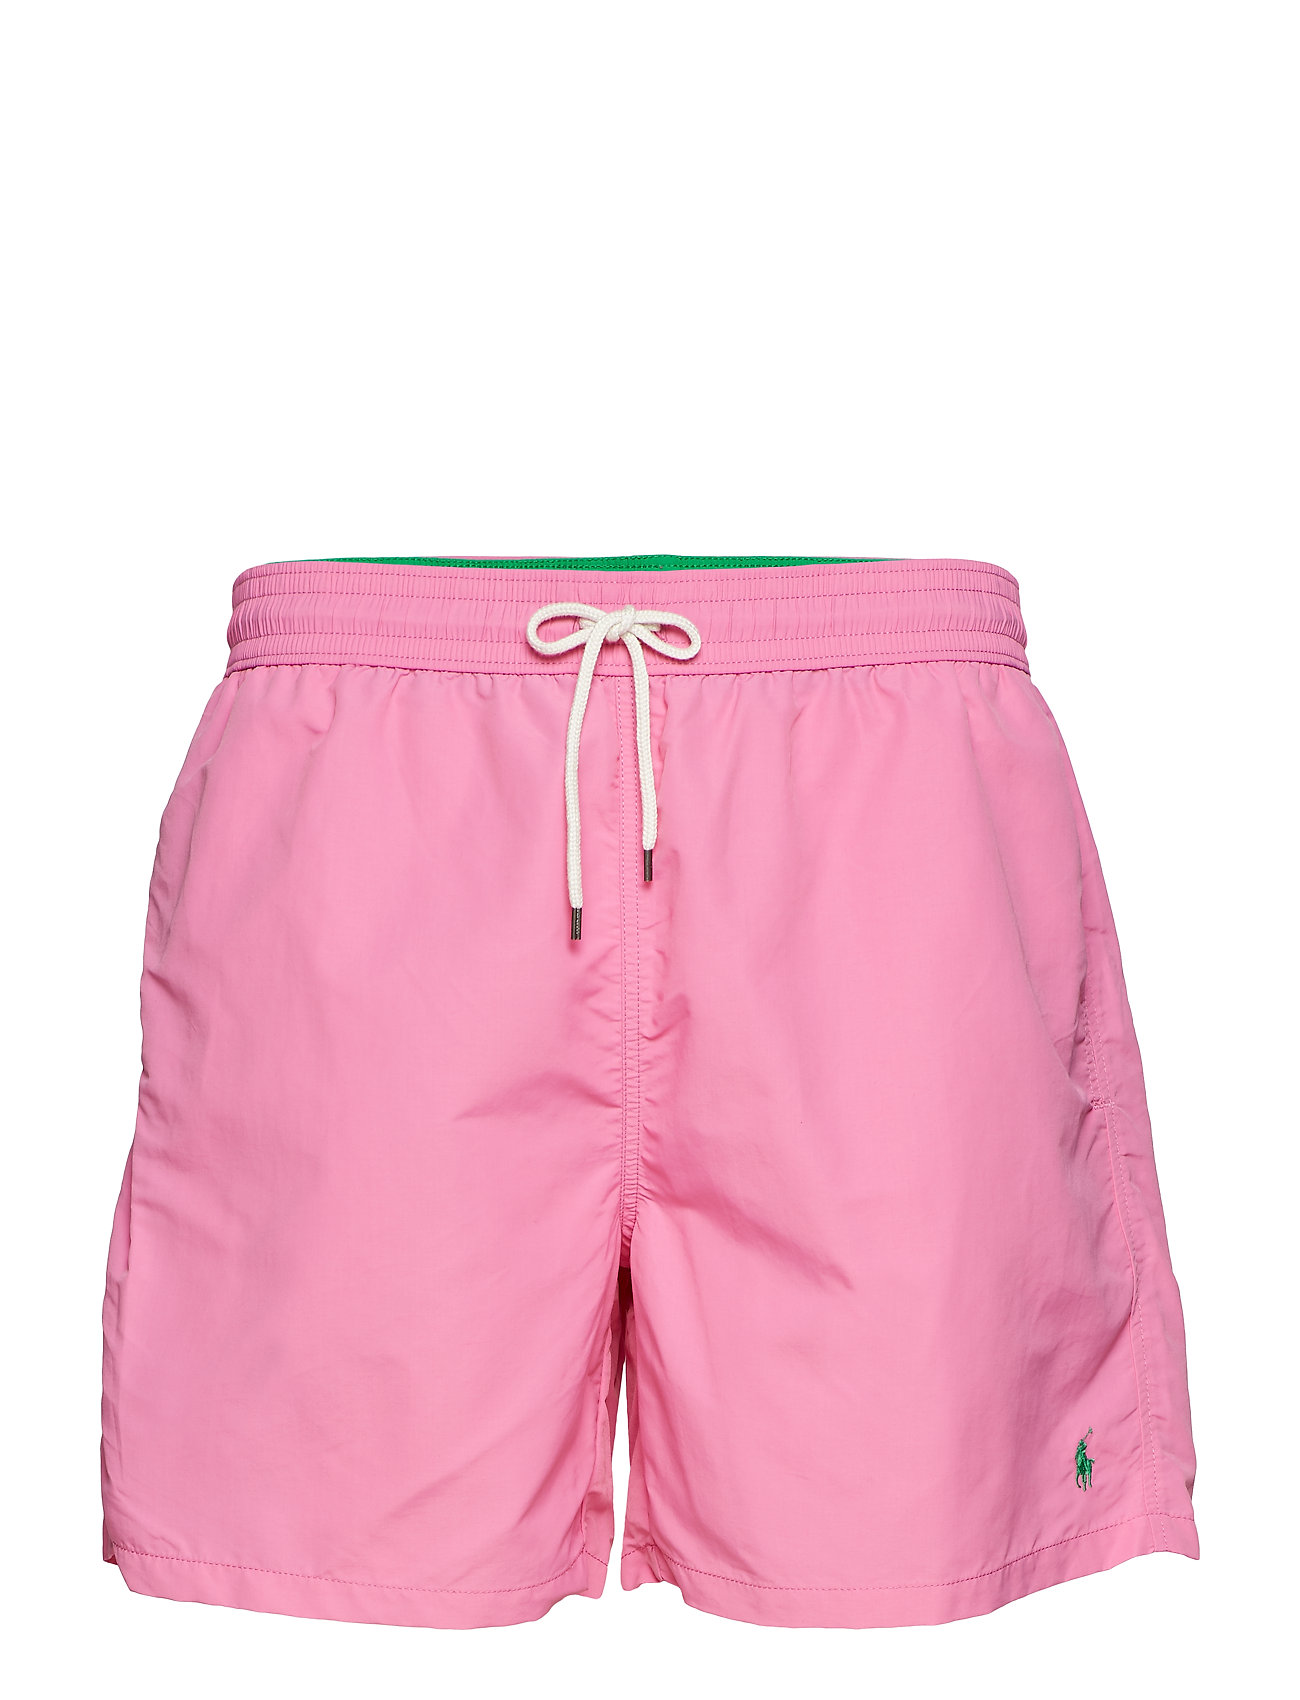 Polo Ralph Lauren Big & Tall Traveler Swim Trunk - MAUI PINK